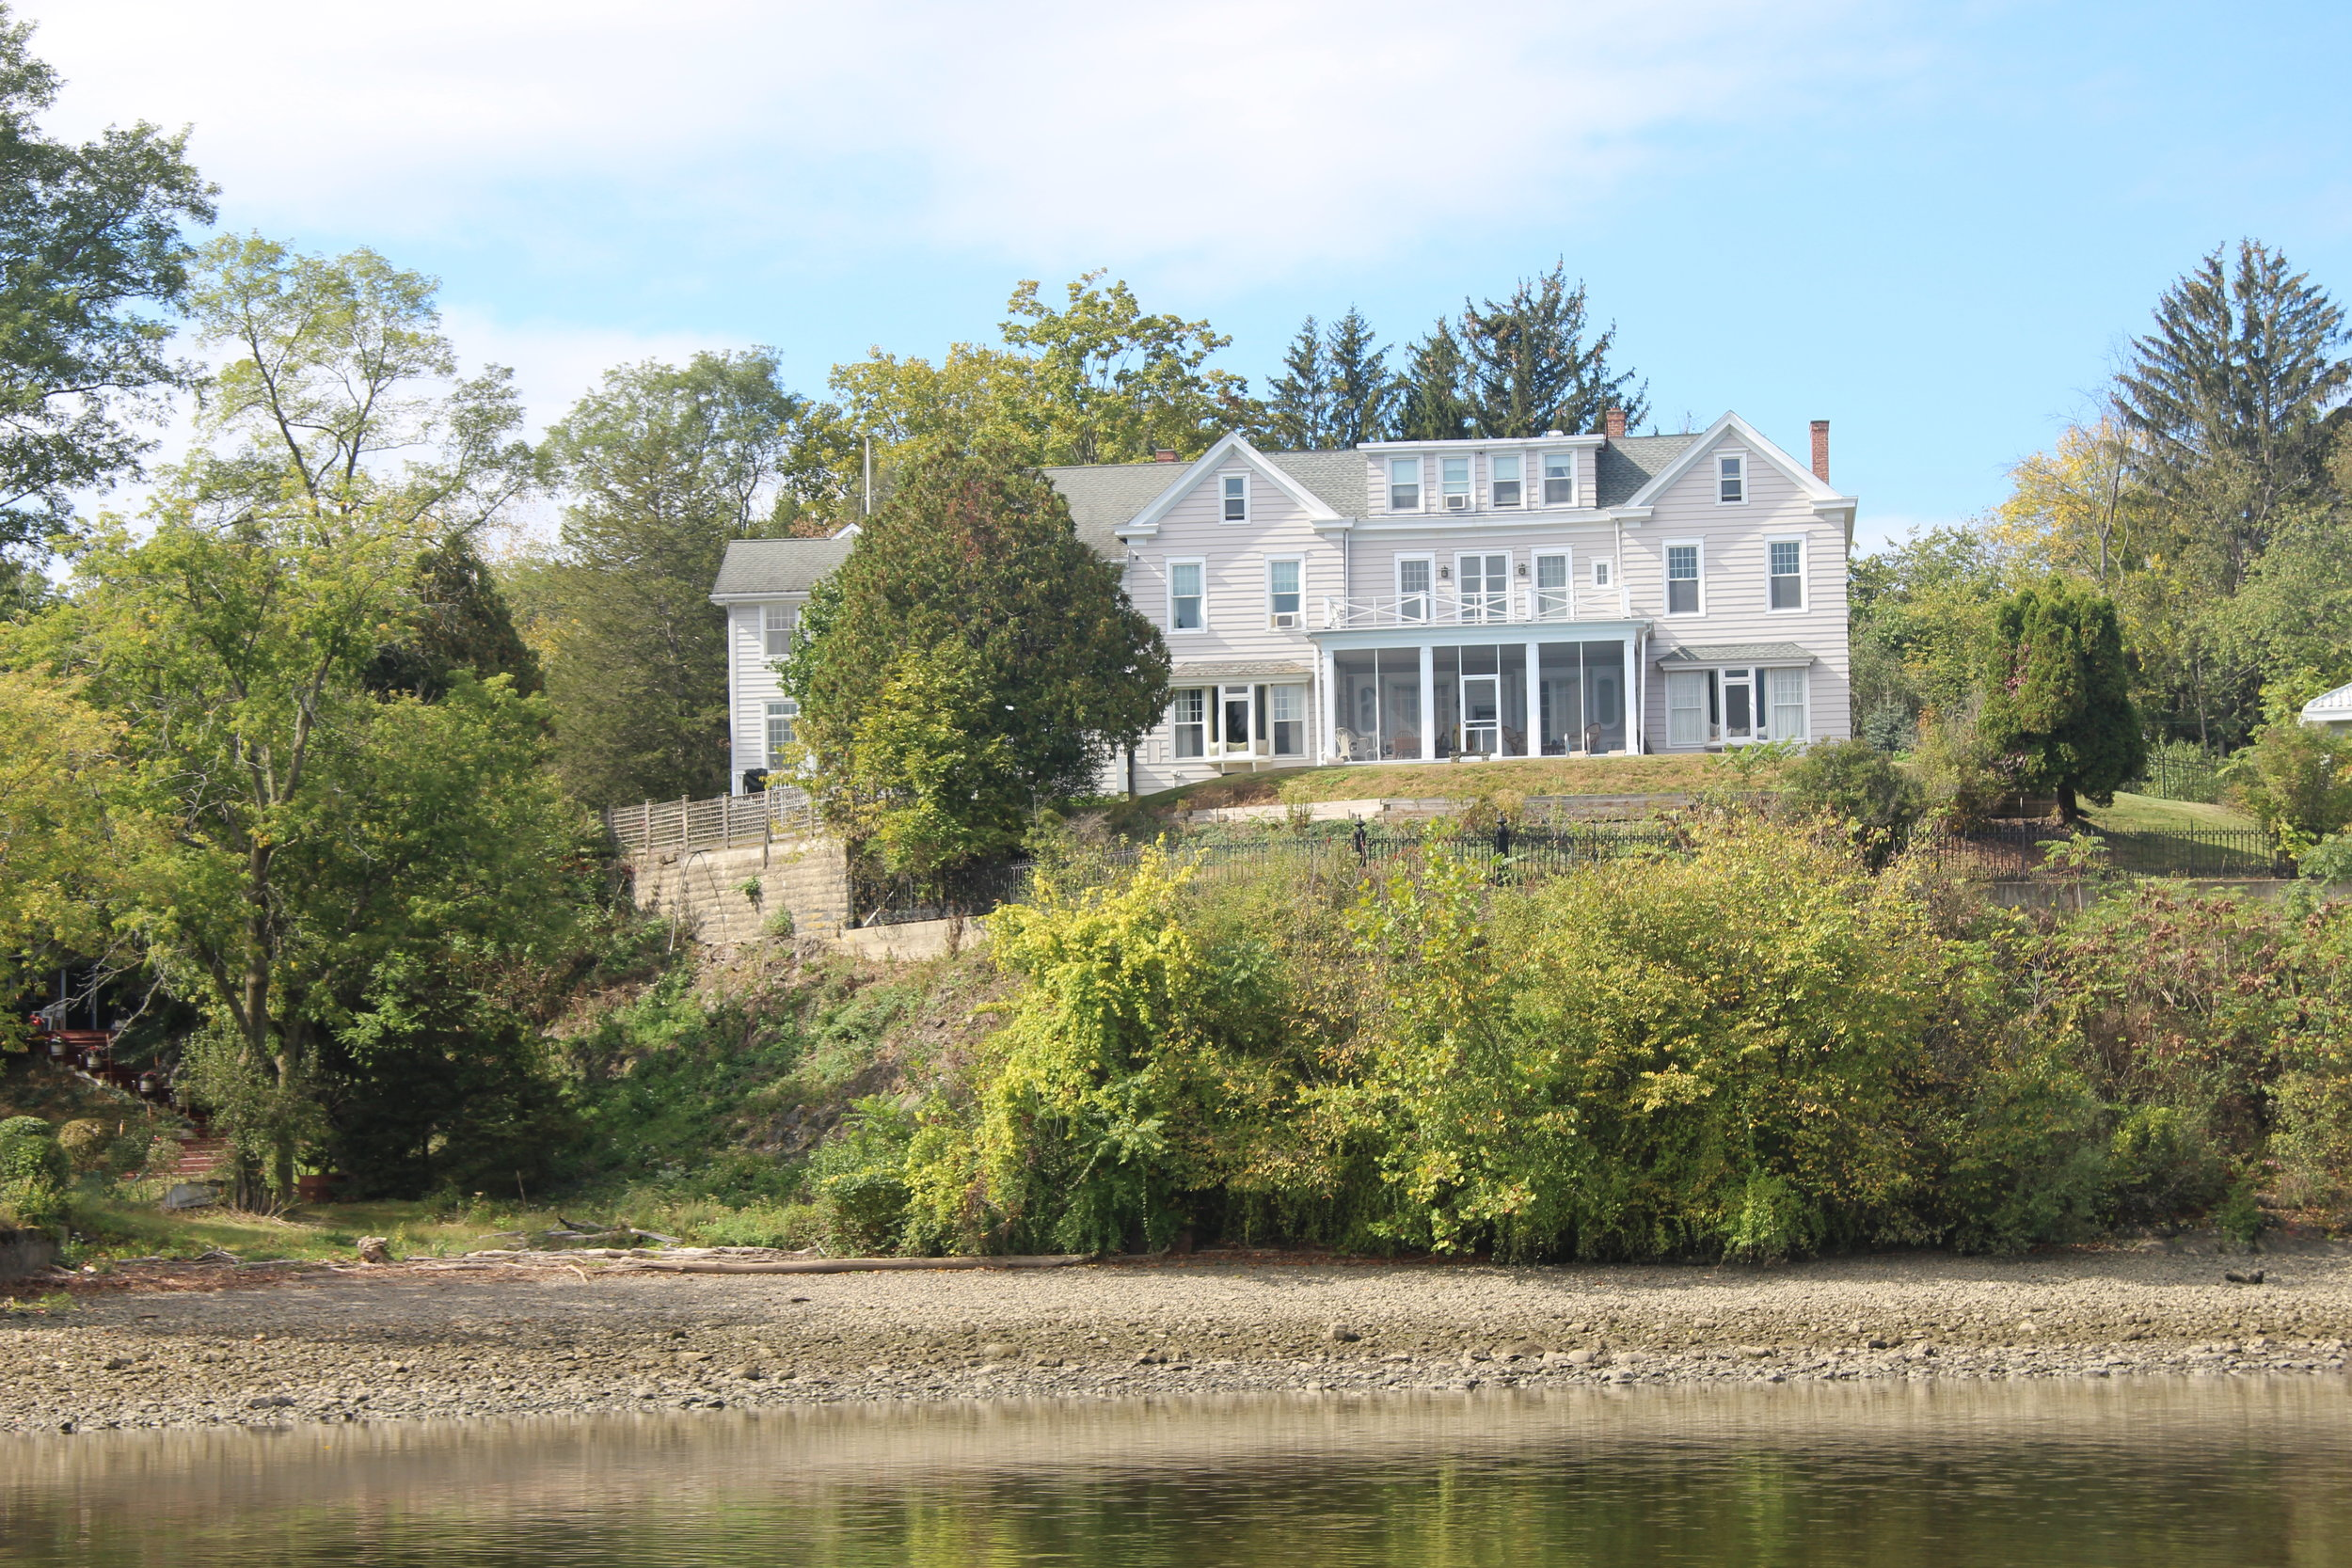 So many gorgeous homes along the Hudson.